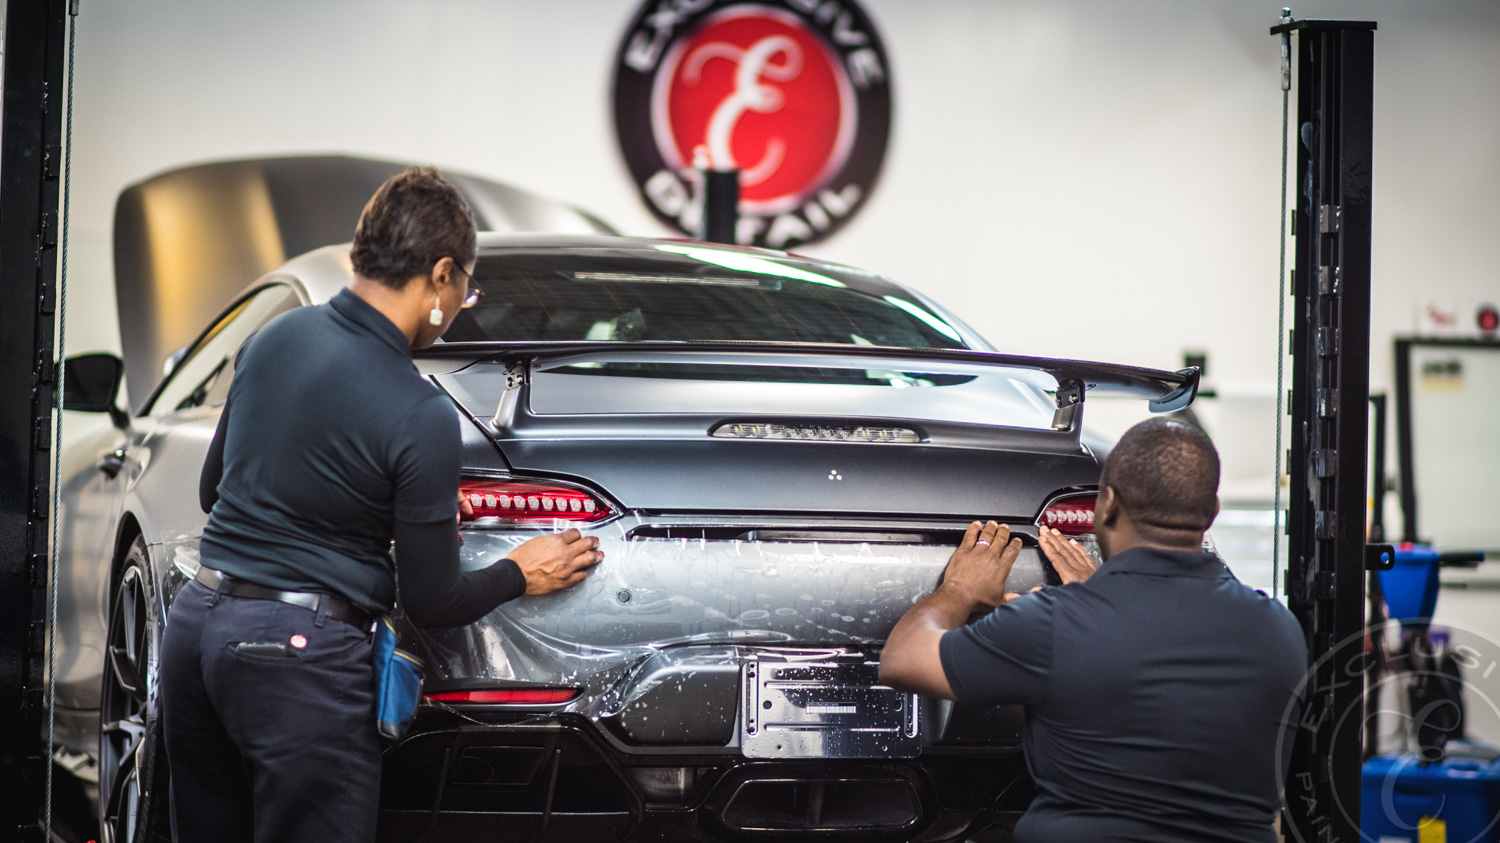 - The urethane technology behind Paint Protection Film was originally developed by 3M at the request of the U.S. Military during the Vietnam War.